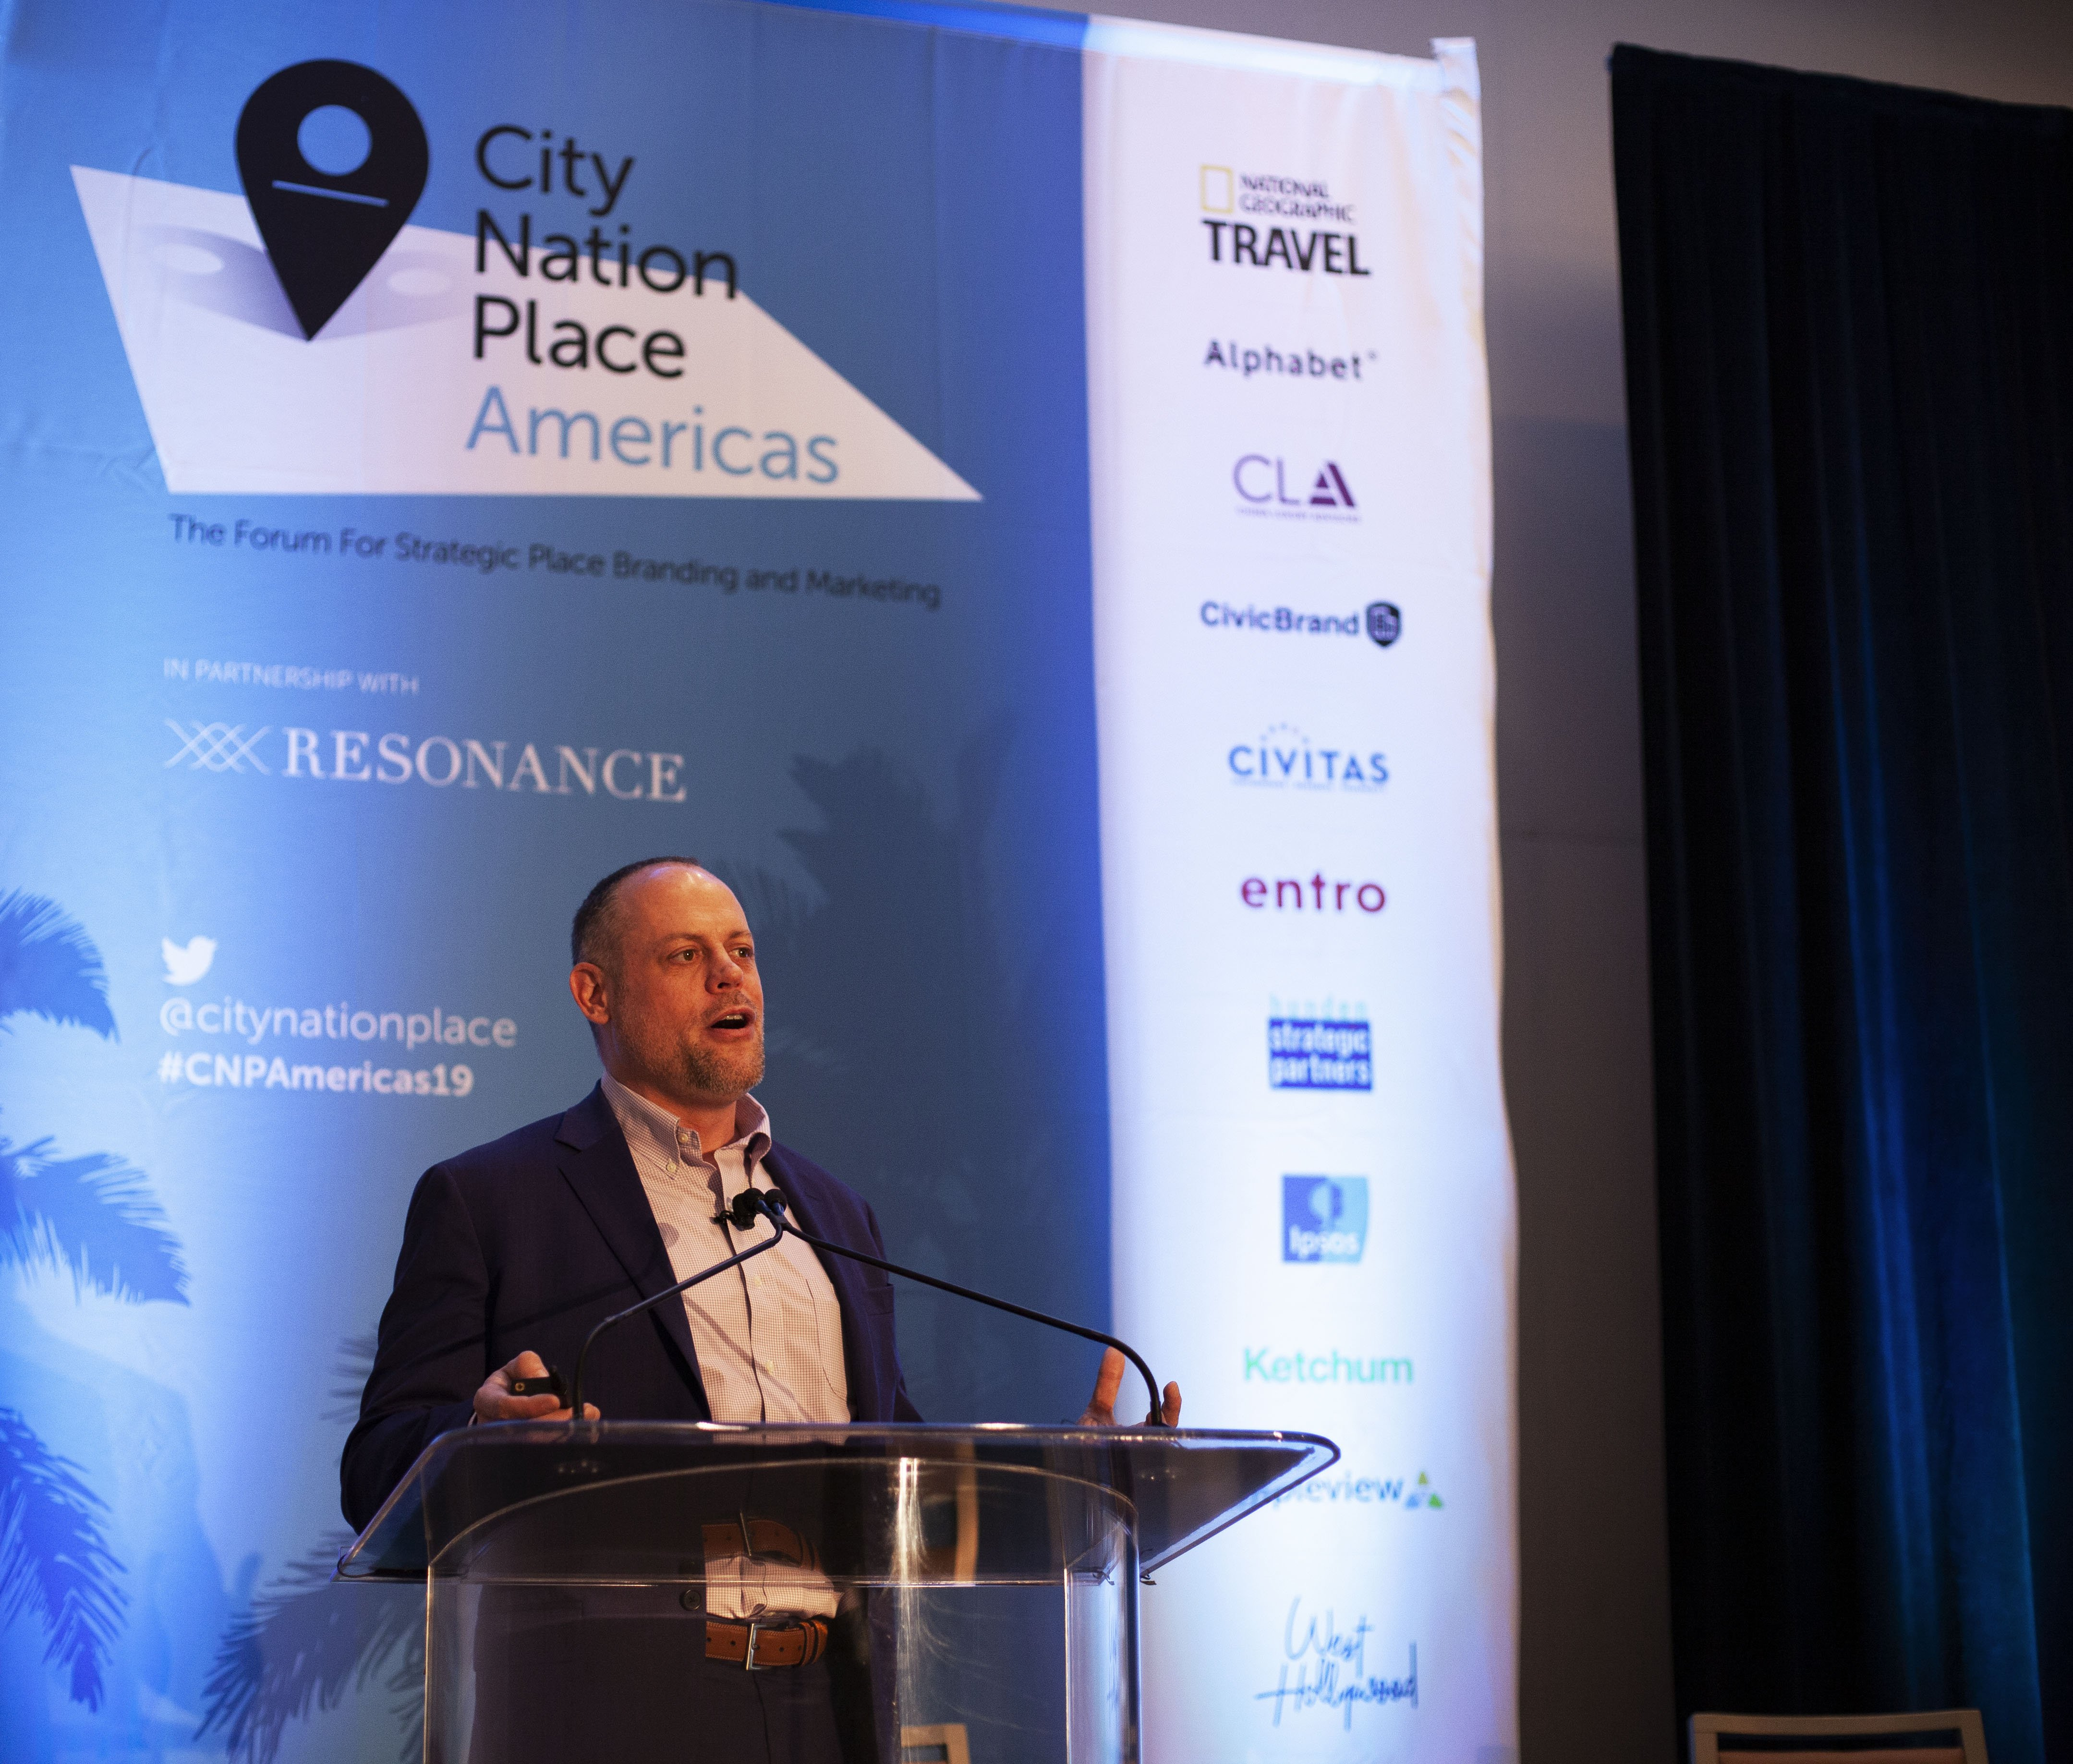 Photo of Rob Hunden, CEO, Hunden presenting at City Nation Place Americas 2019